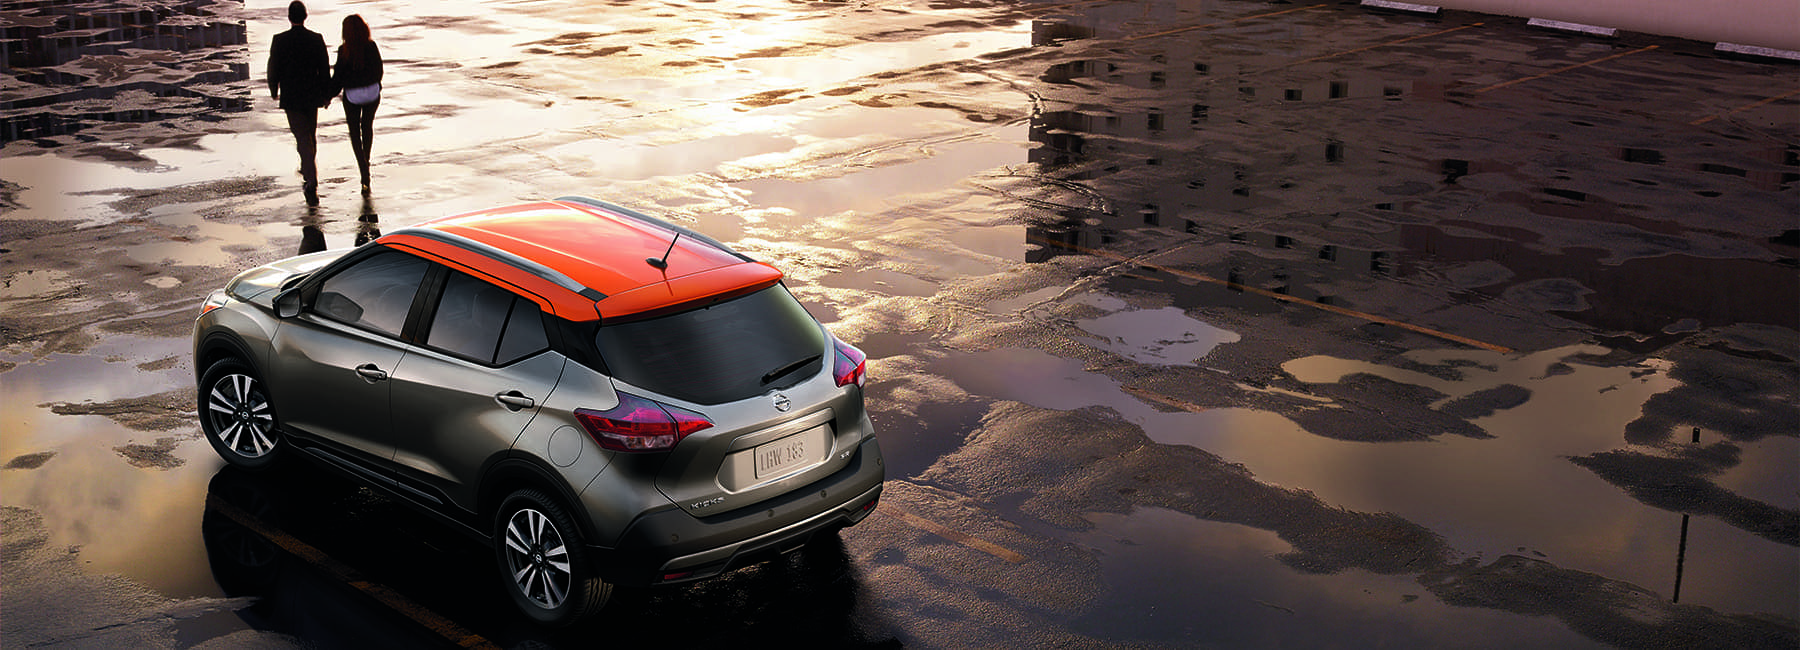 exterior view of Nissan kicks parked